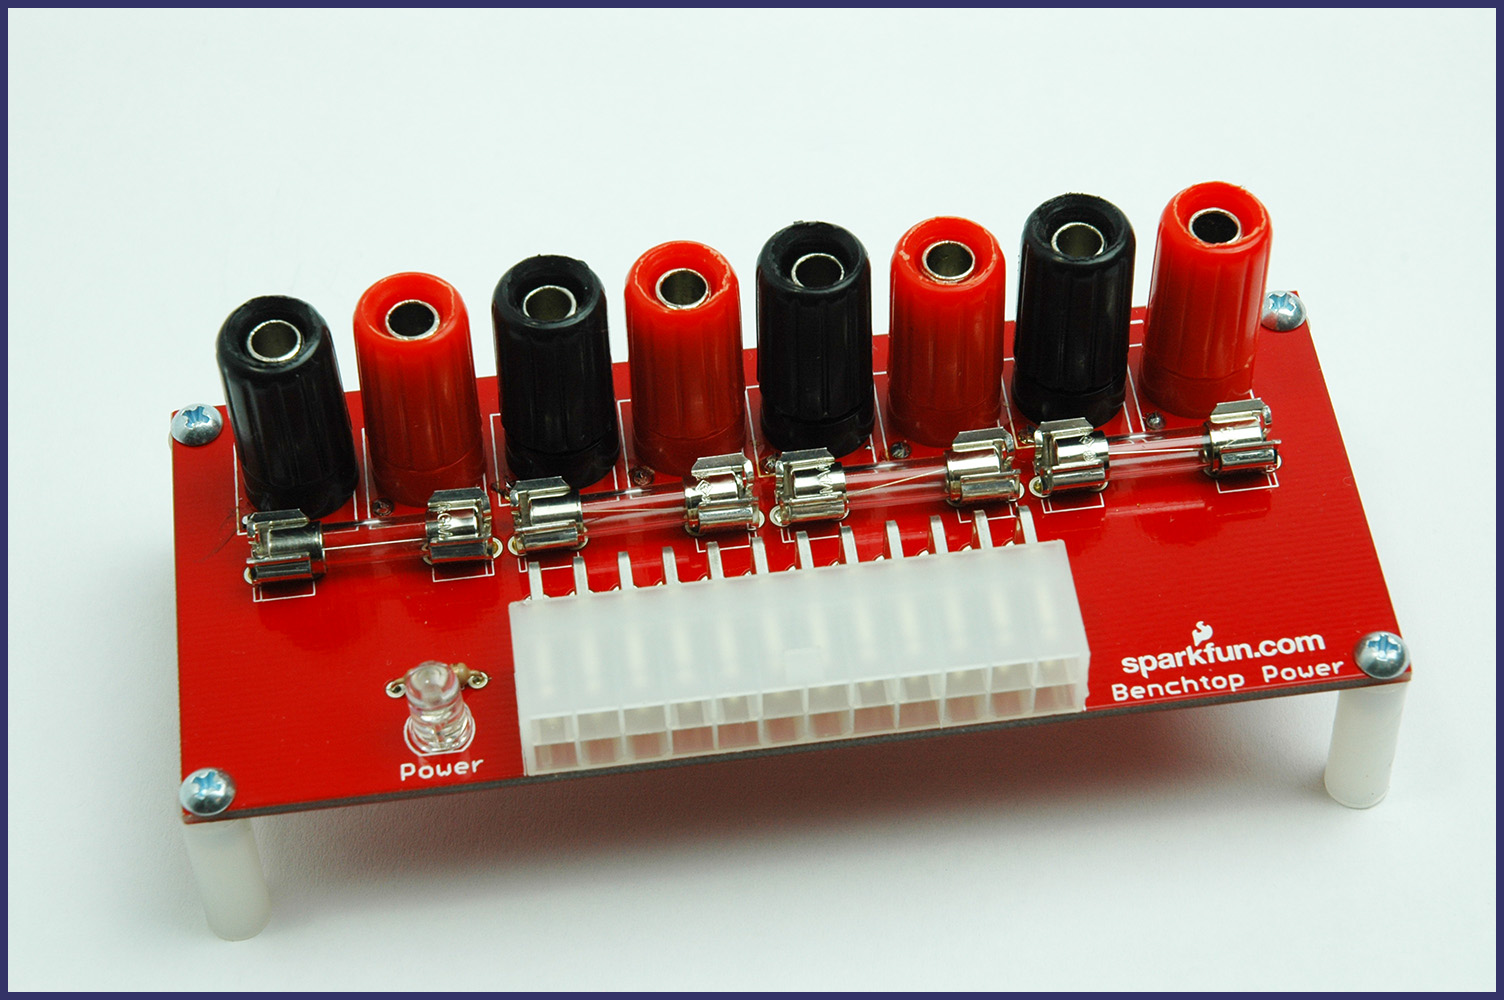 Techunboxed Sparkfun Bench Top Power Board Kit Review